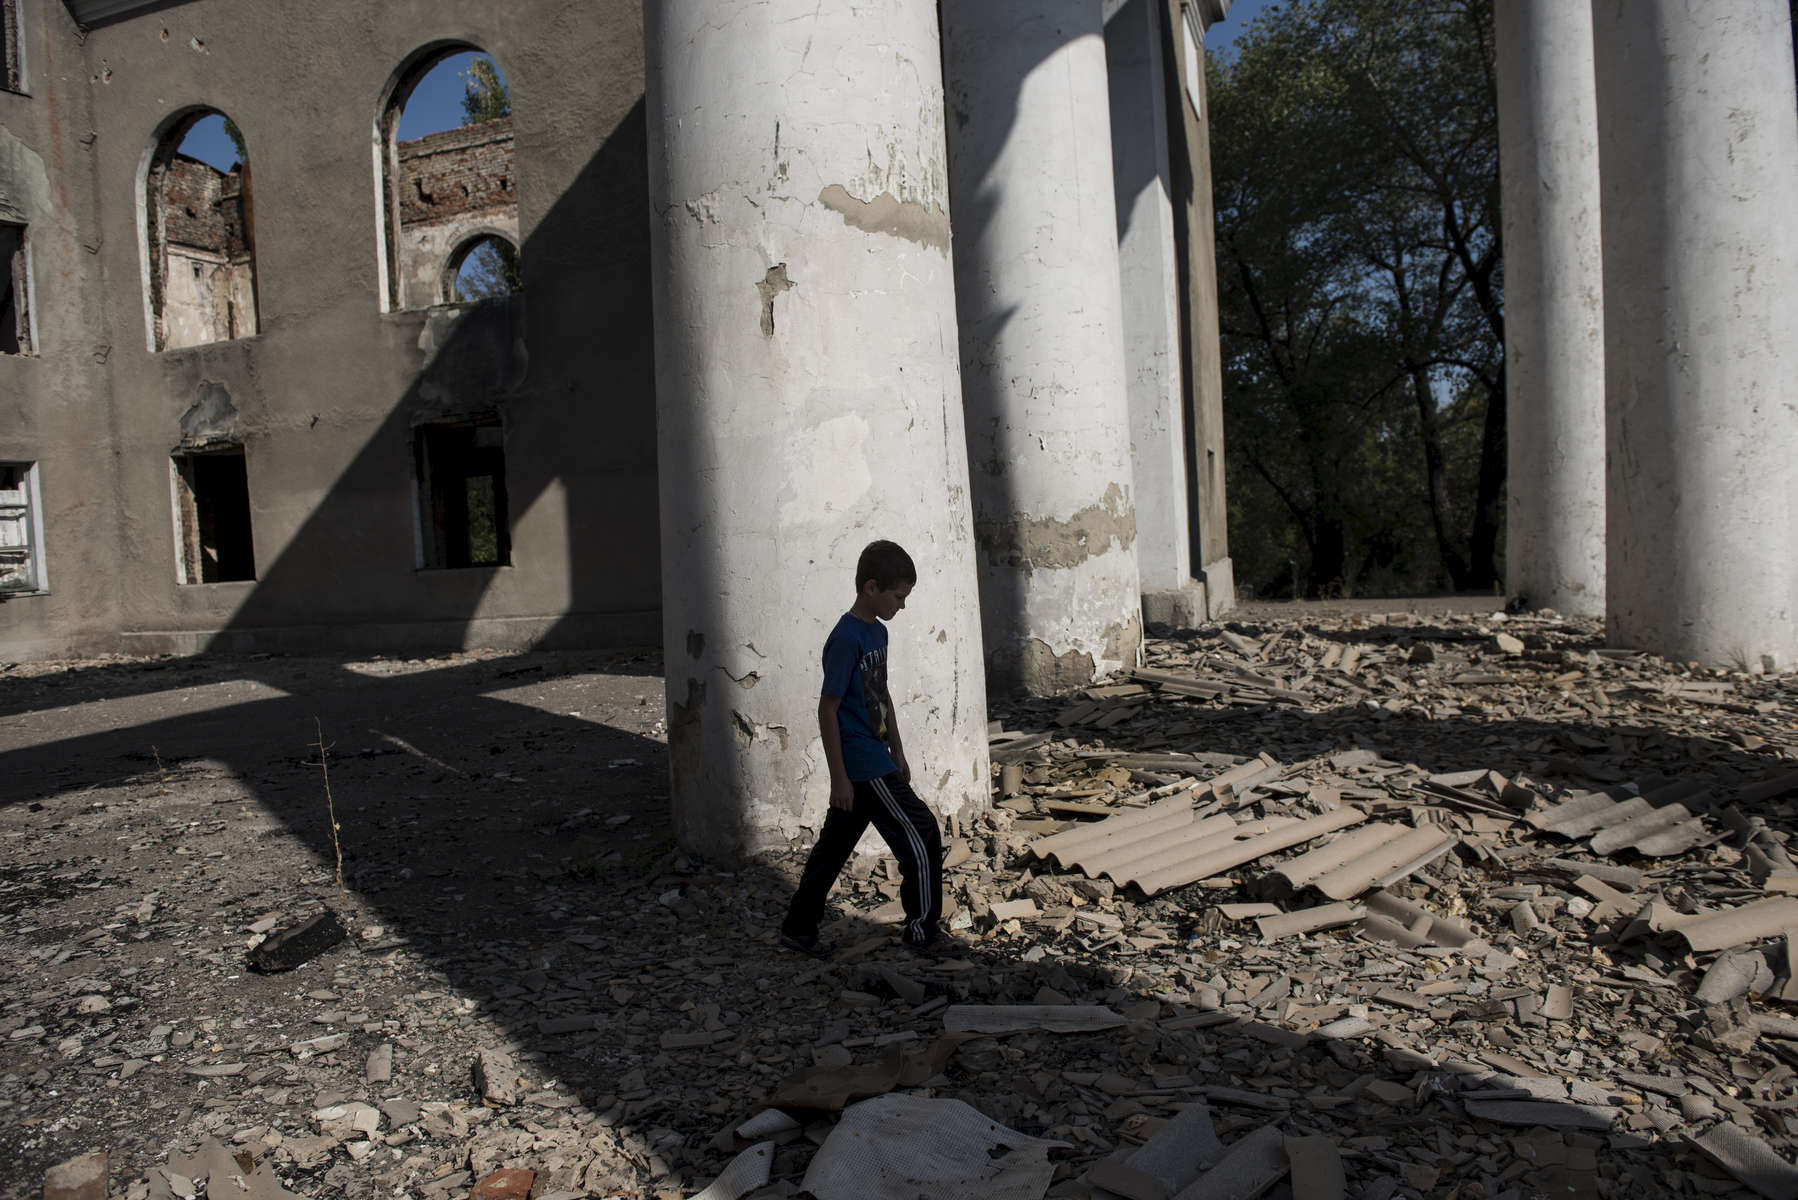 Oleg Teryokhin walks through the remnants of a municipal building in Debaltsevo, the village he and his mother are currently staying in near his native village of Nikishino--both destroyed by the east Ukraine war, September 27, 2015, in DNR territory.  Nikishino village was far from the sites of early skirmishing and neither side bothered trying to control this small village until it turned out it was on the path of a major Ukrainian offensive begun in July with the goal of encircling Donetsk city, the provincial capital. Using long-range artillery and spotter aircraft to target it, the Ukrainian army was pushing separatists back from one town after another. Galina Teryokhina, Oleg's mother, said residents didn't take the war seriously until mid July, 2014. Oleg was playing outside in the afternoon when loud explosions were heard in the sky. Later, some papers with English writing and bits of charred clothes fluttered through the village, and Oleg picked some up. Nikishino village was at the edge of the debris field of the Malaysia Airlines Flight 17, likely shot down by rebels who mistook it for a Ukrainian spotter aircraft.